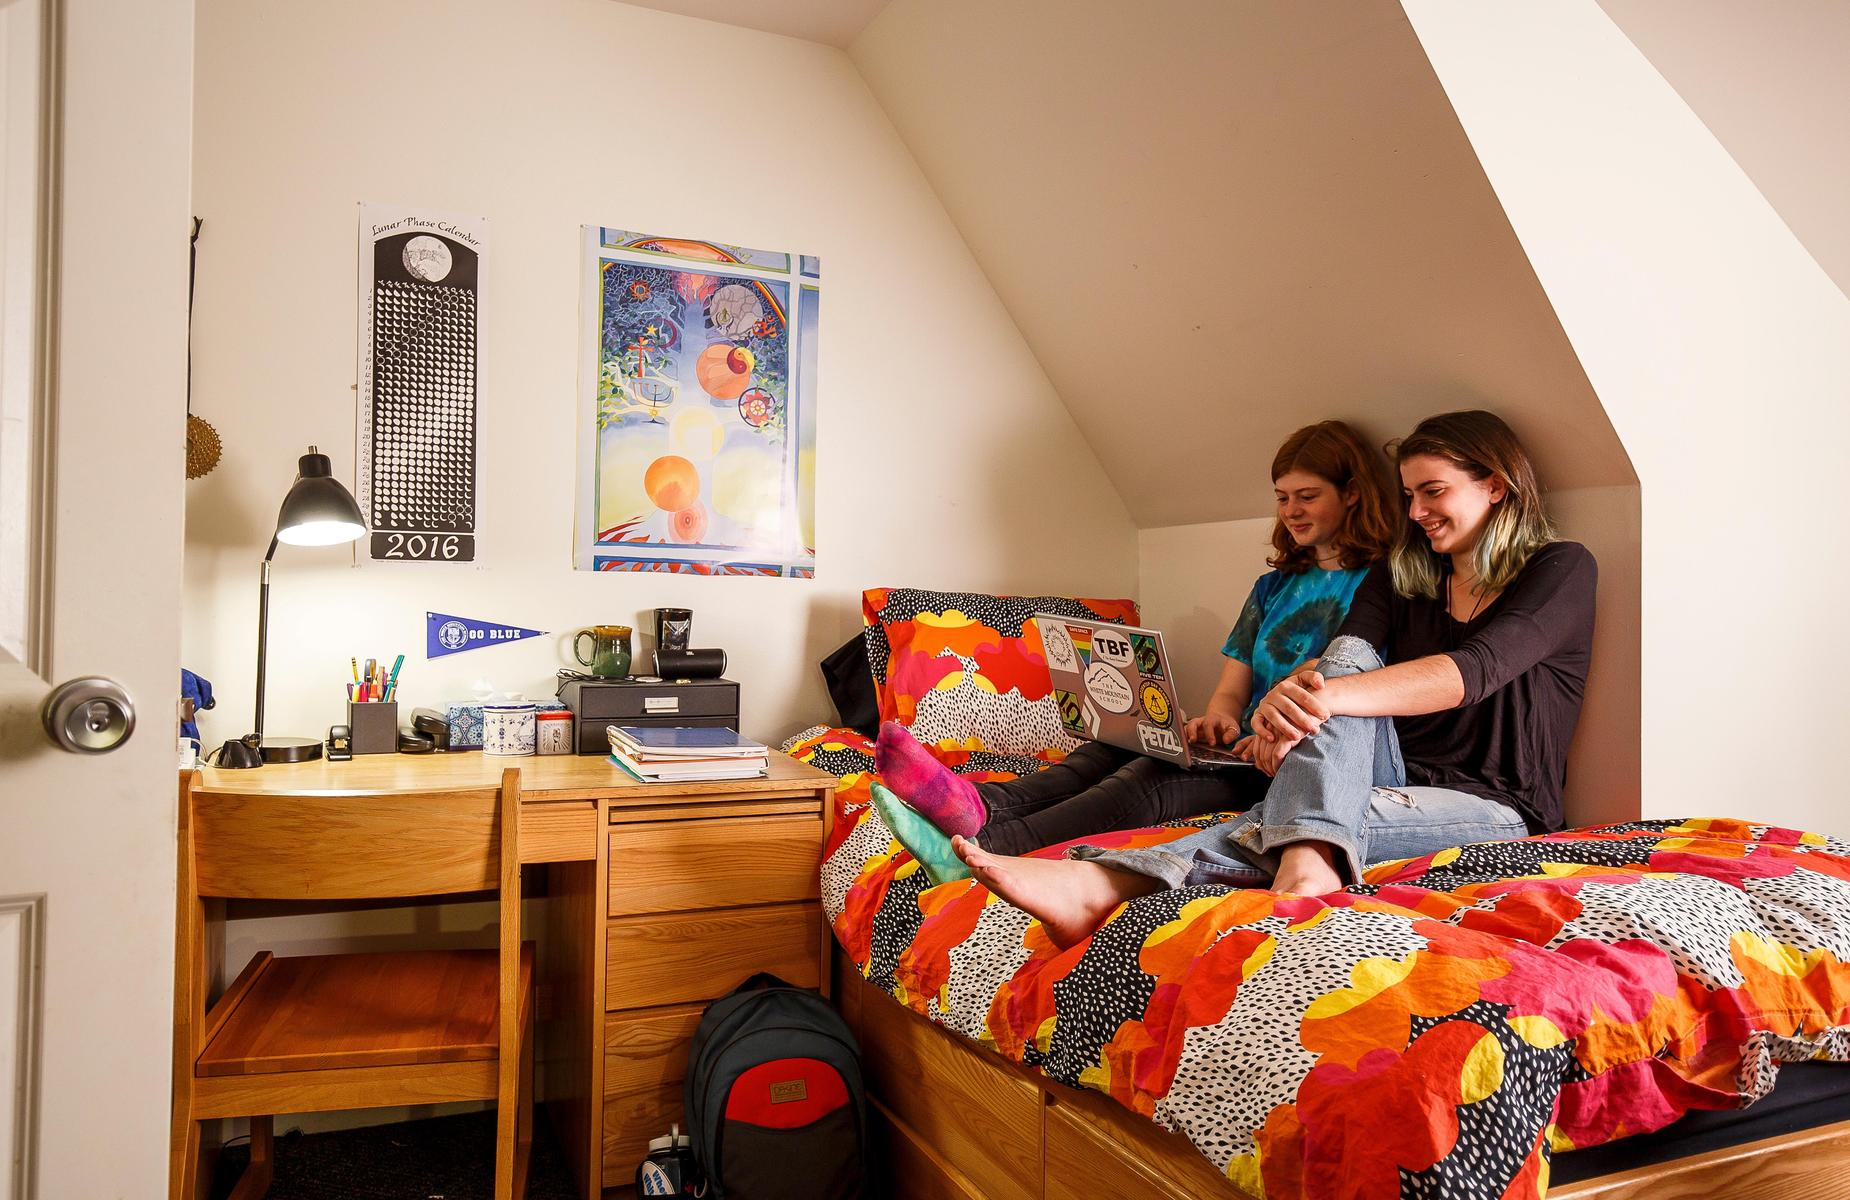 Two students watching a movie in a dorm room.